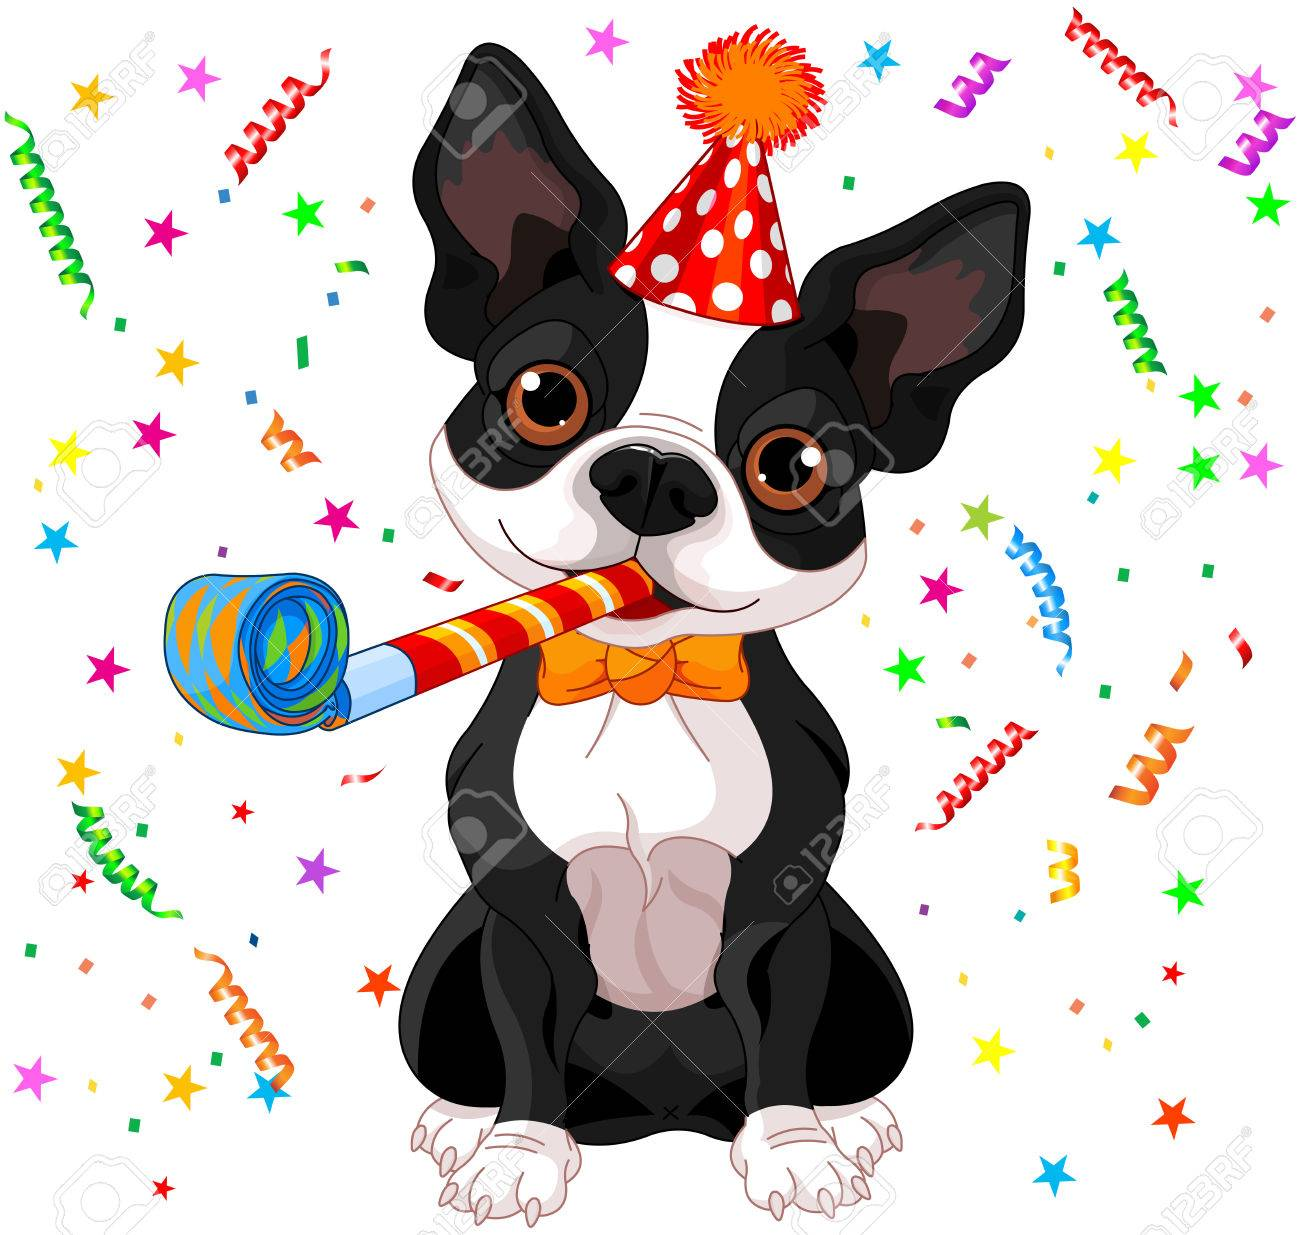 Demandes d'attention incessantes 35588778-illustration-of-cute-boston-terrier-celebrating